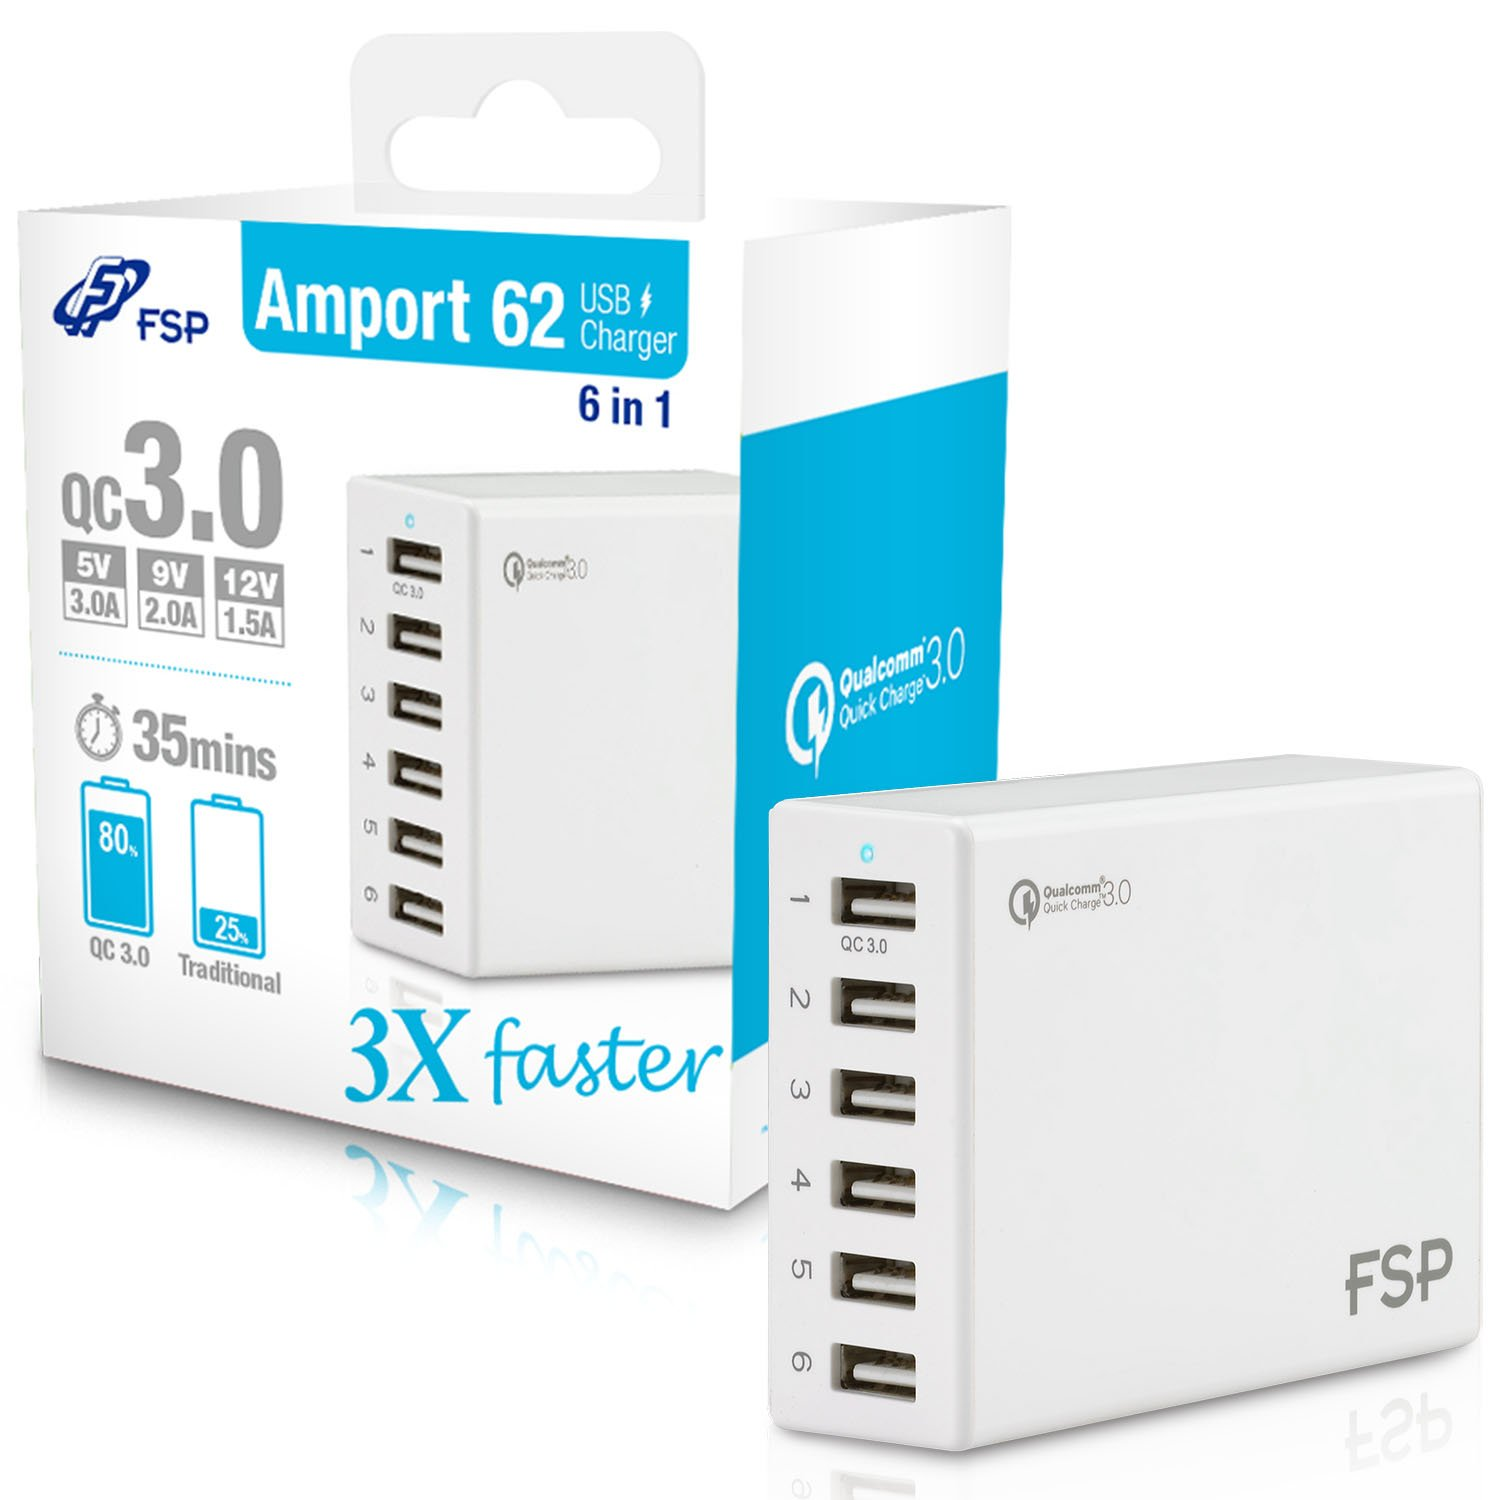 FSP 62W 6 Port Quick Charge 3.0 USB Charger 5V 9V 12V Auto Detect for iPhone iPad Tablet Android MP3 Power Bank (Amport 62 White)